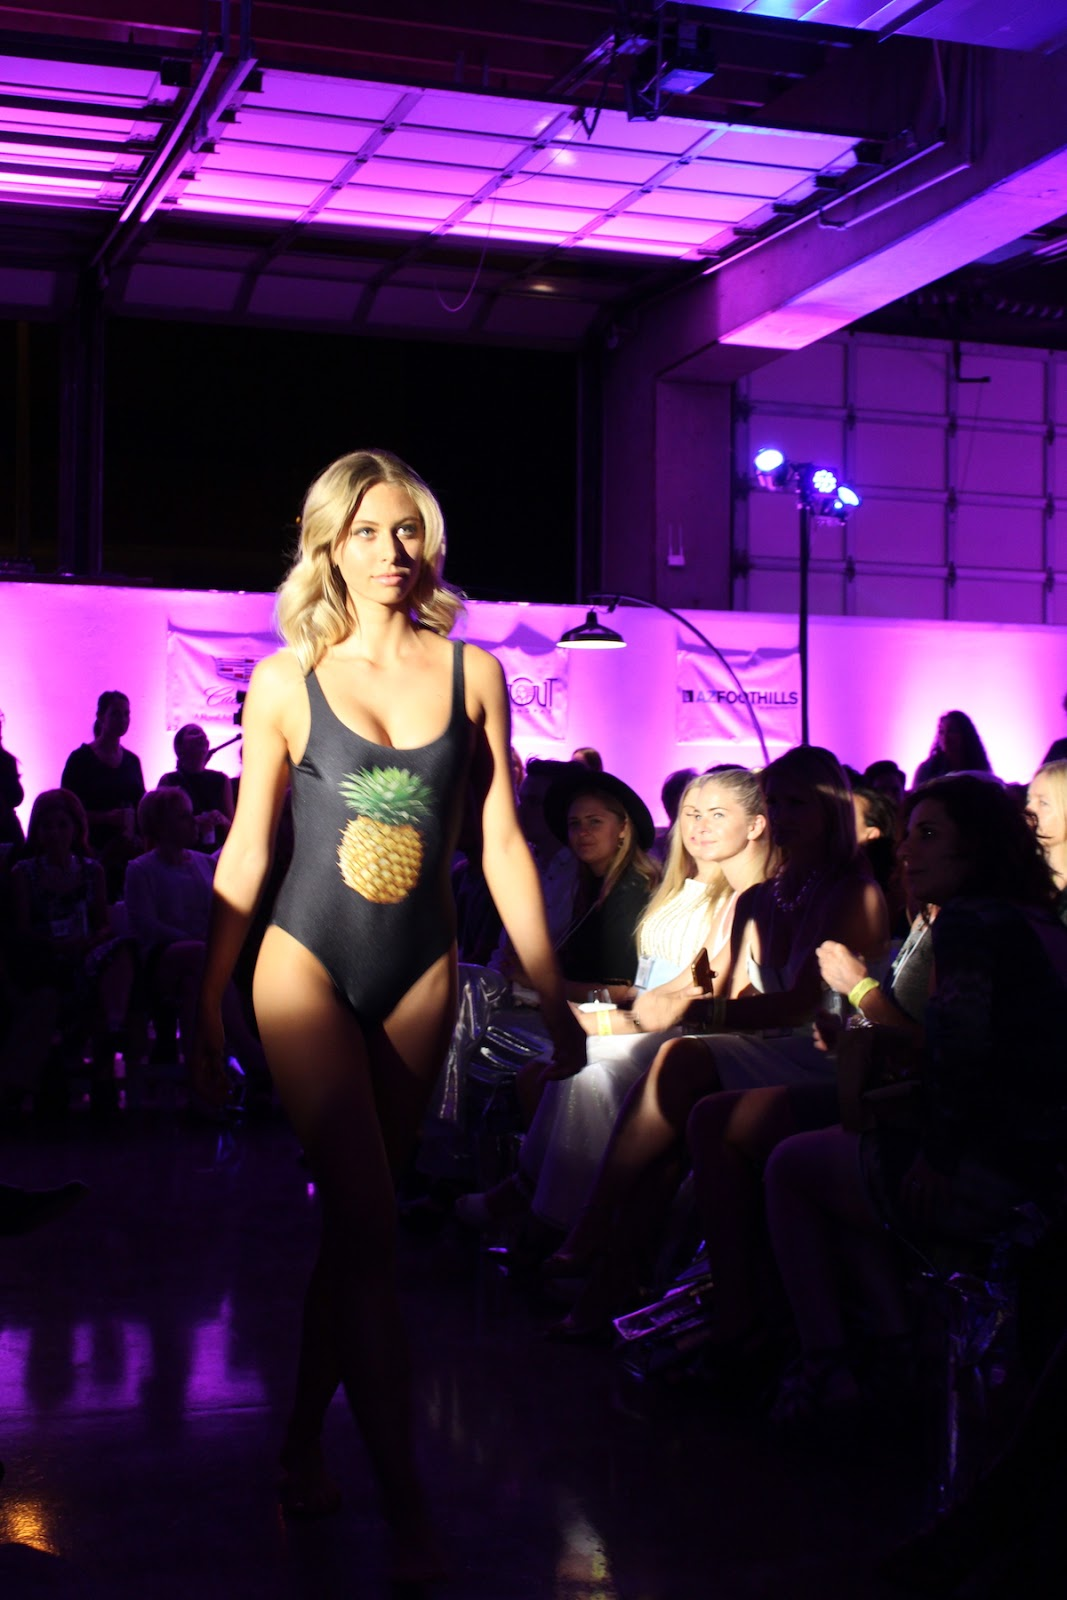 In this photo, the model is rocking a one piece that's black with a pineapple on the front. She commands the runway.